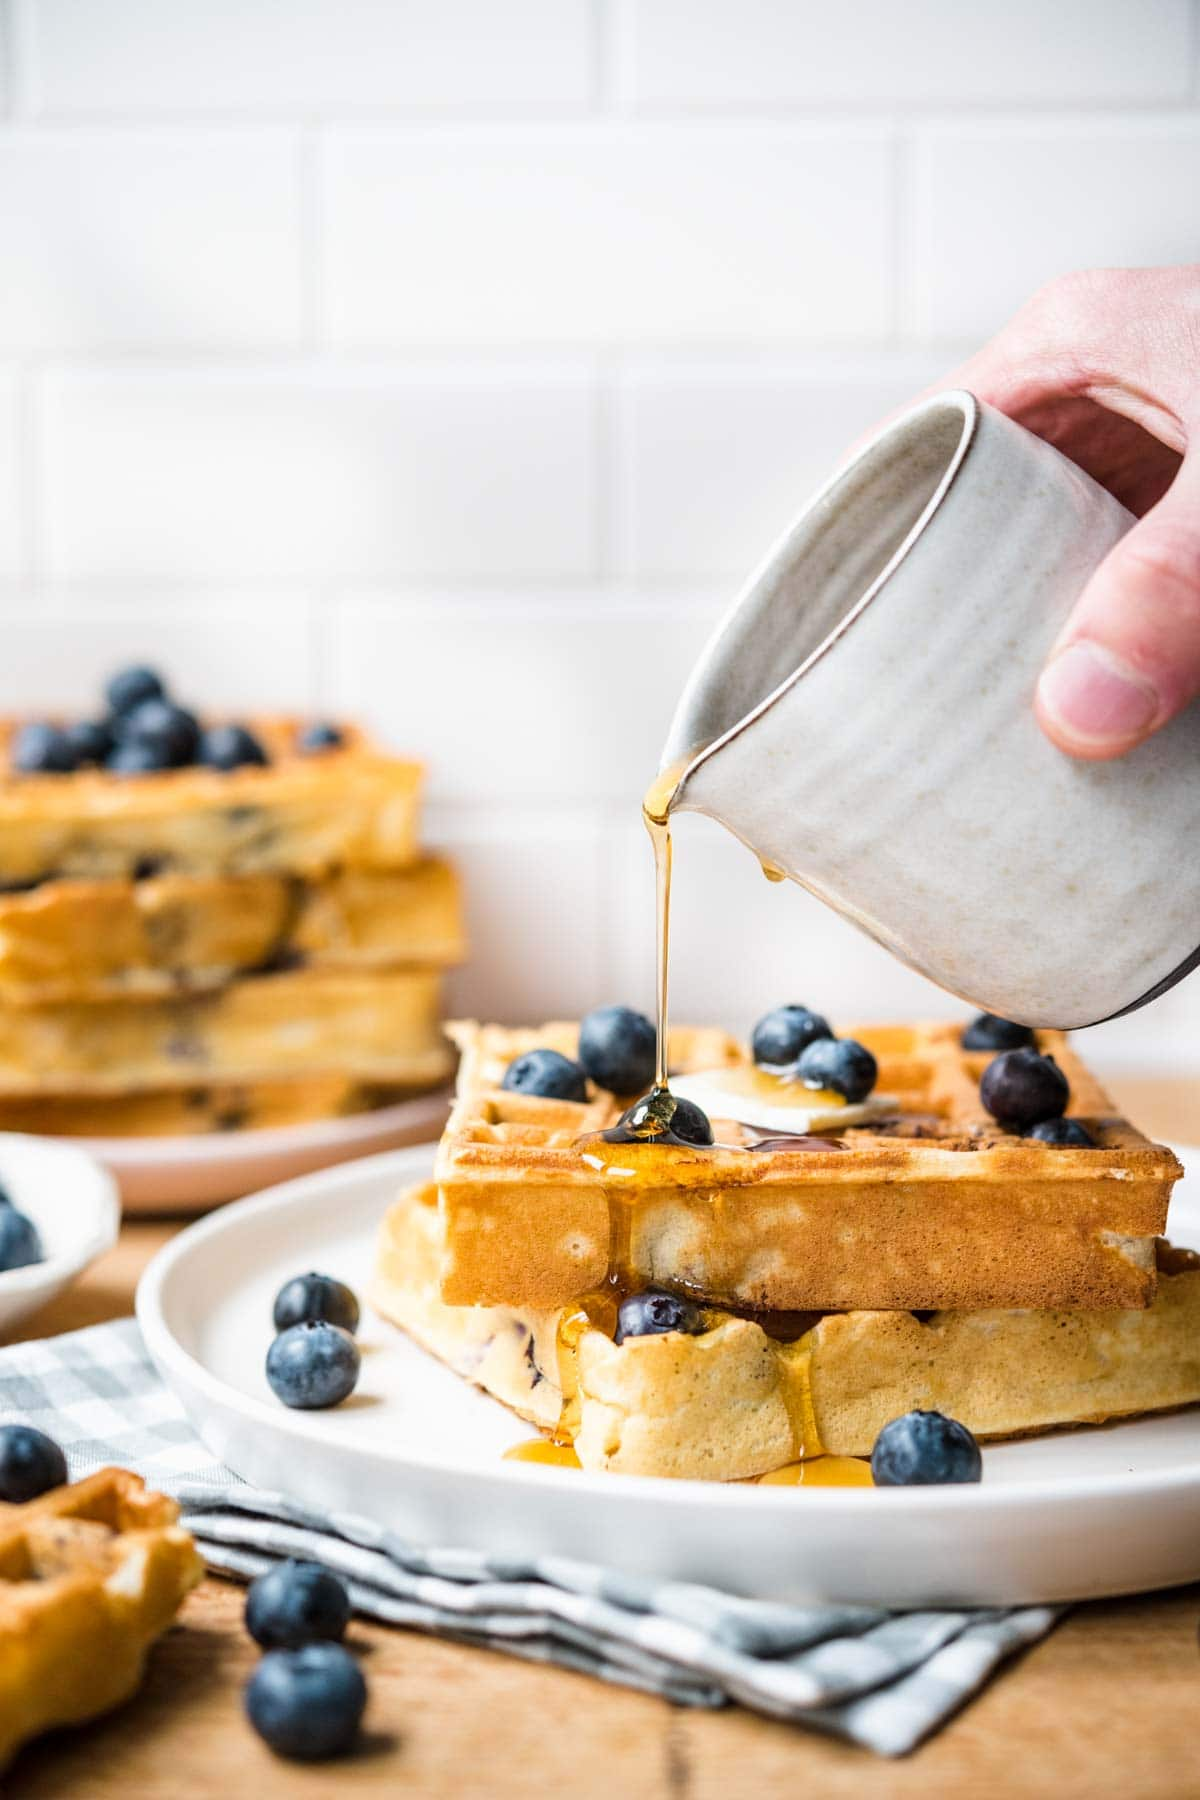 Blueberry Waffles on plate with syrup being poured